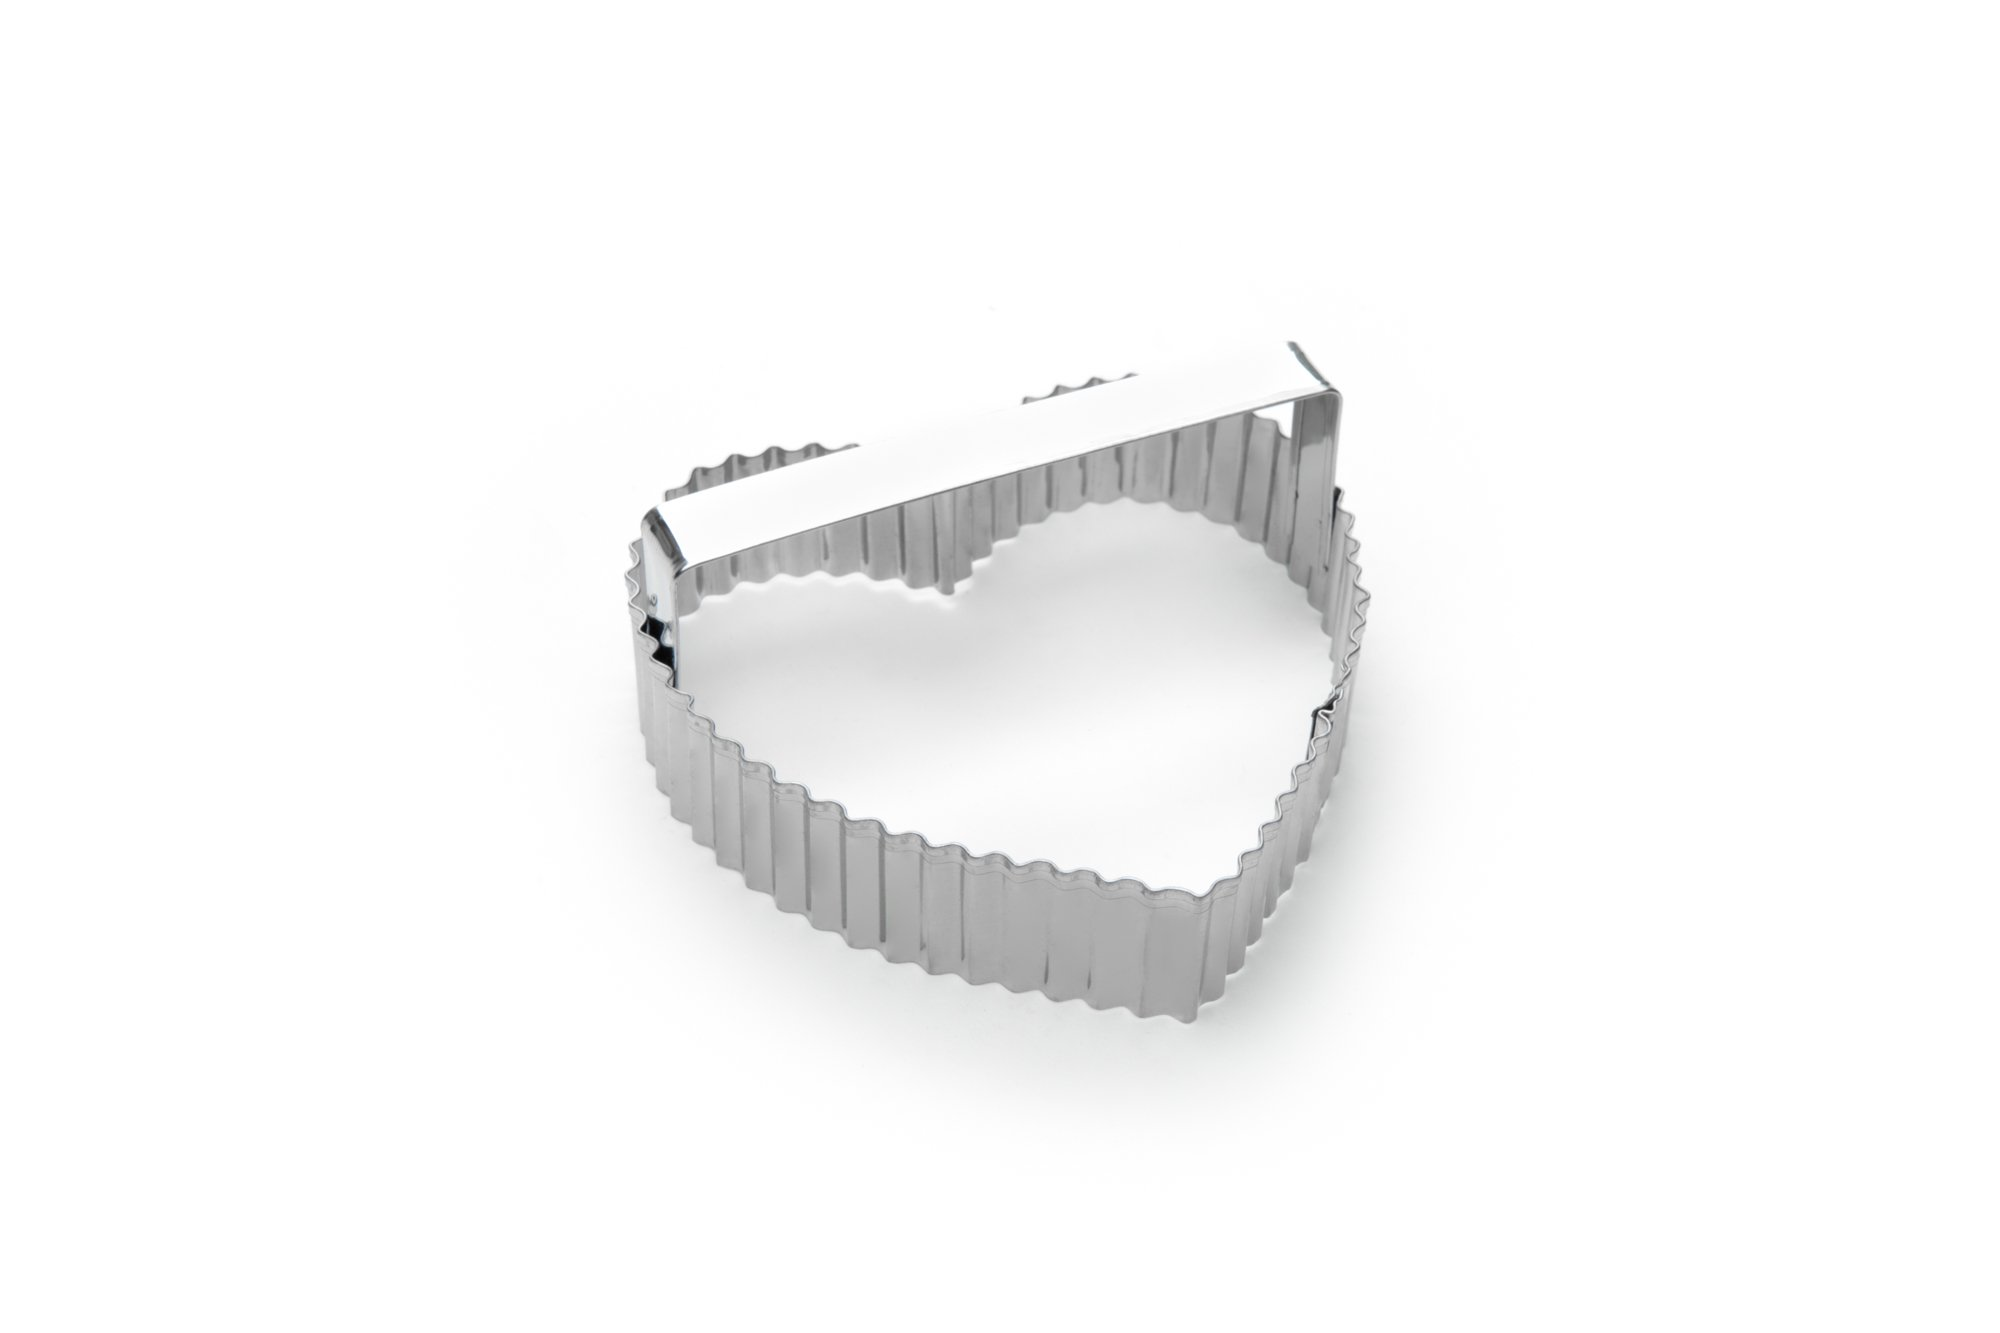 Fox Run 3444 Crinkled Heart Cookie Cutter, 4-Inch, Stainless Steel